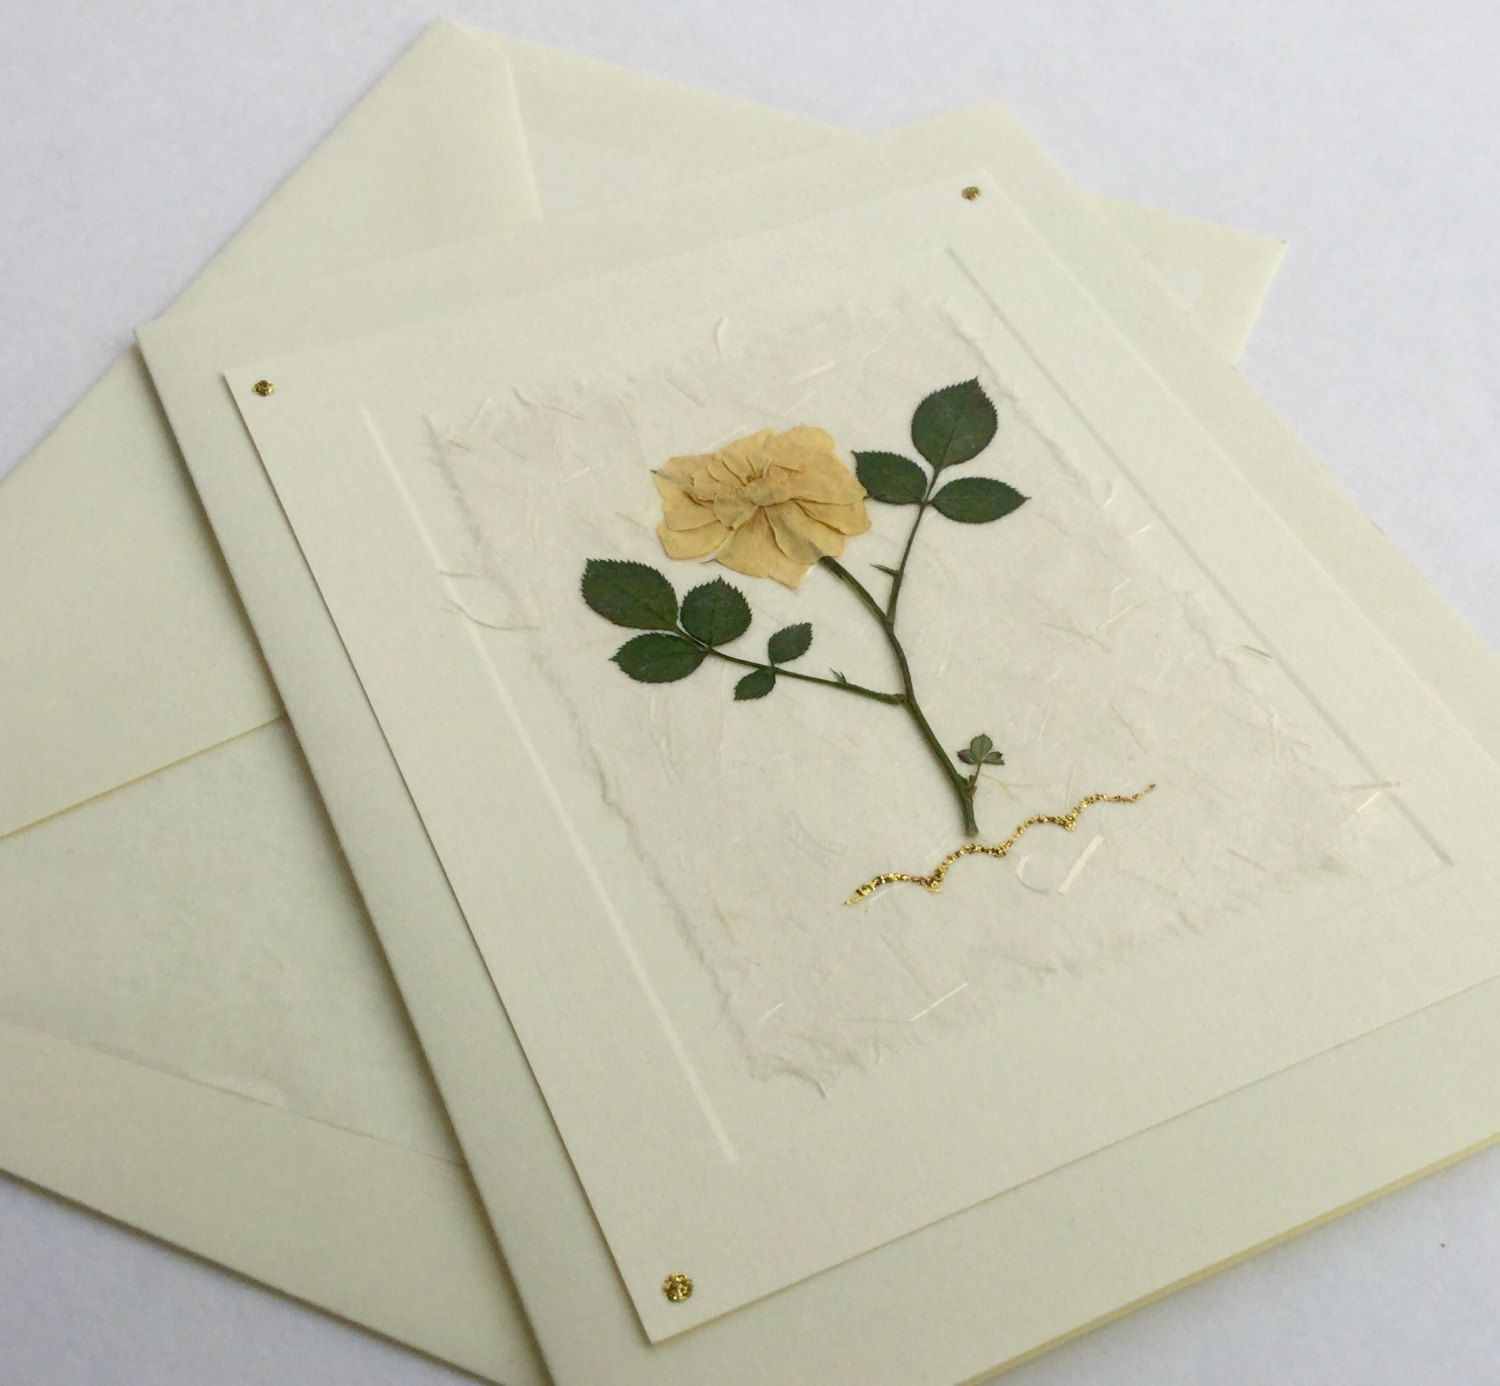 Rose flower yellow rose greeting card ooak handmade card blank rose flower yellow rose greeting card ooak handmade card blank inside izmirmasajfo